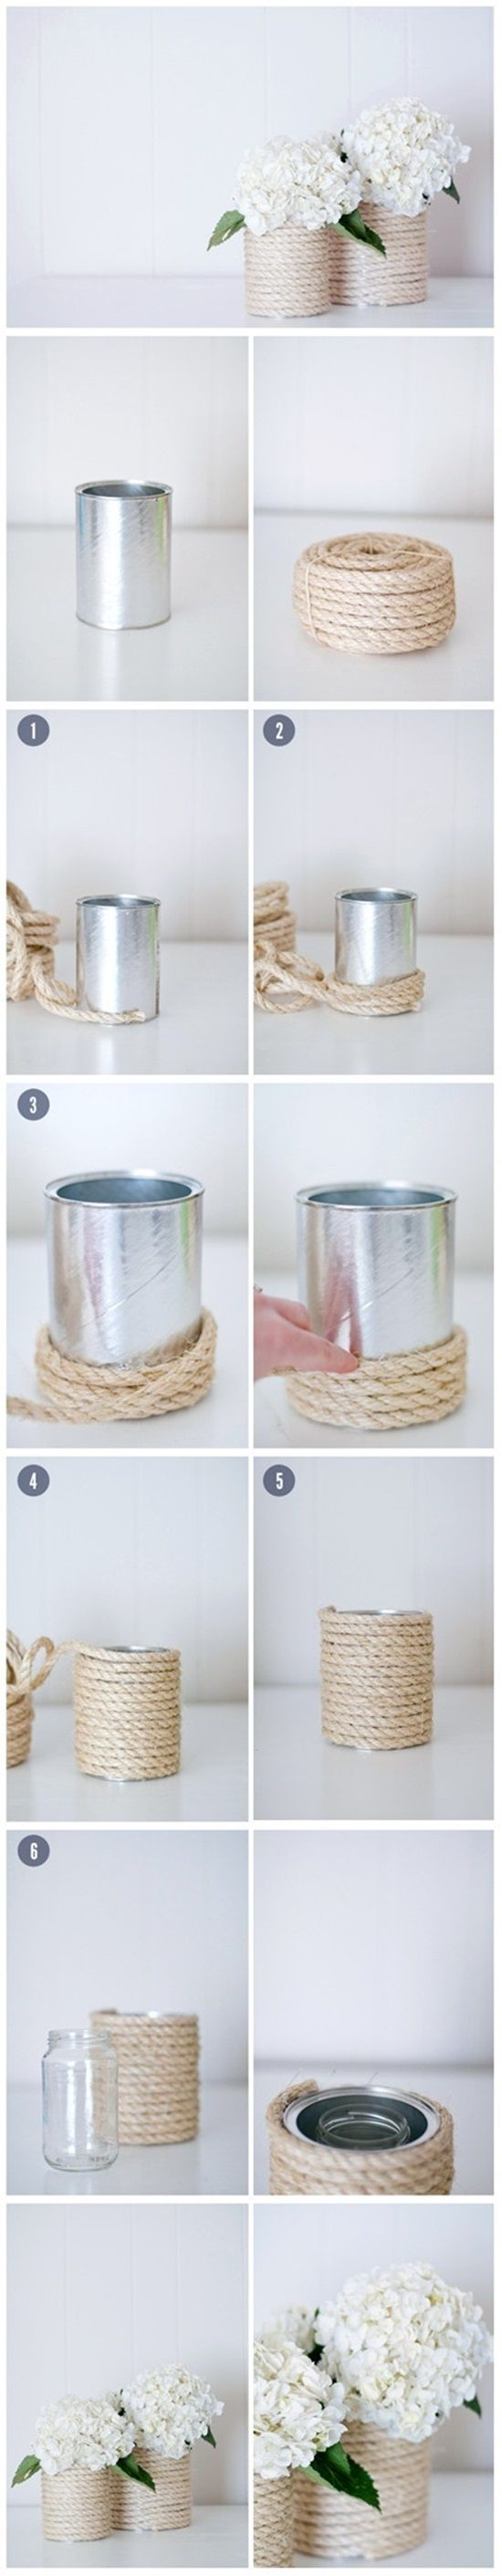 12 DIY Ways To Make Your Own Vase At Home